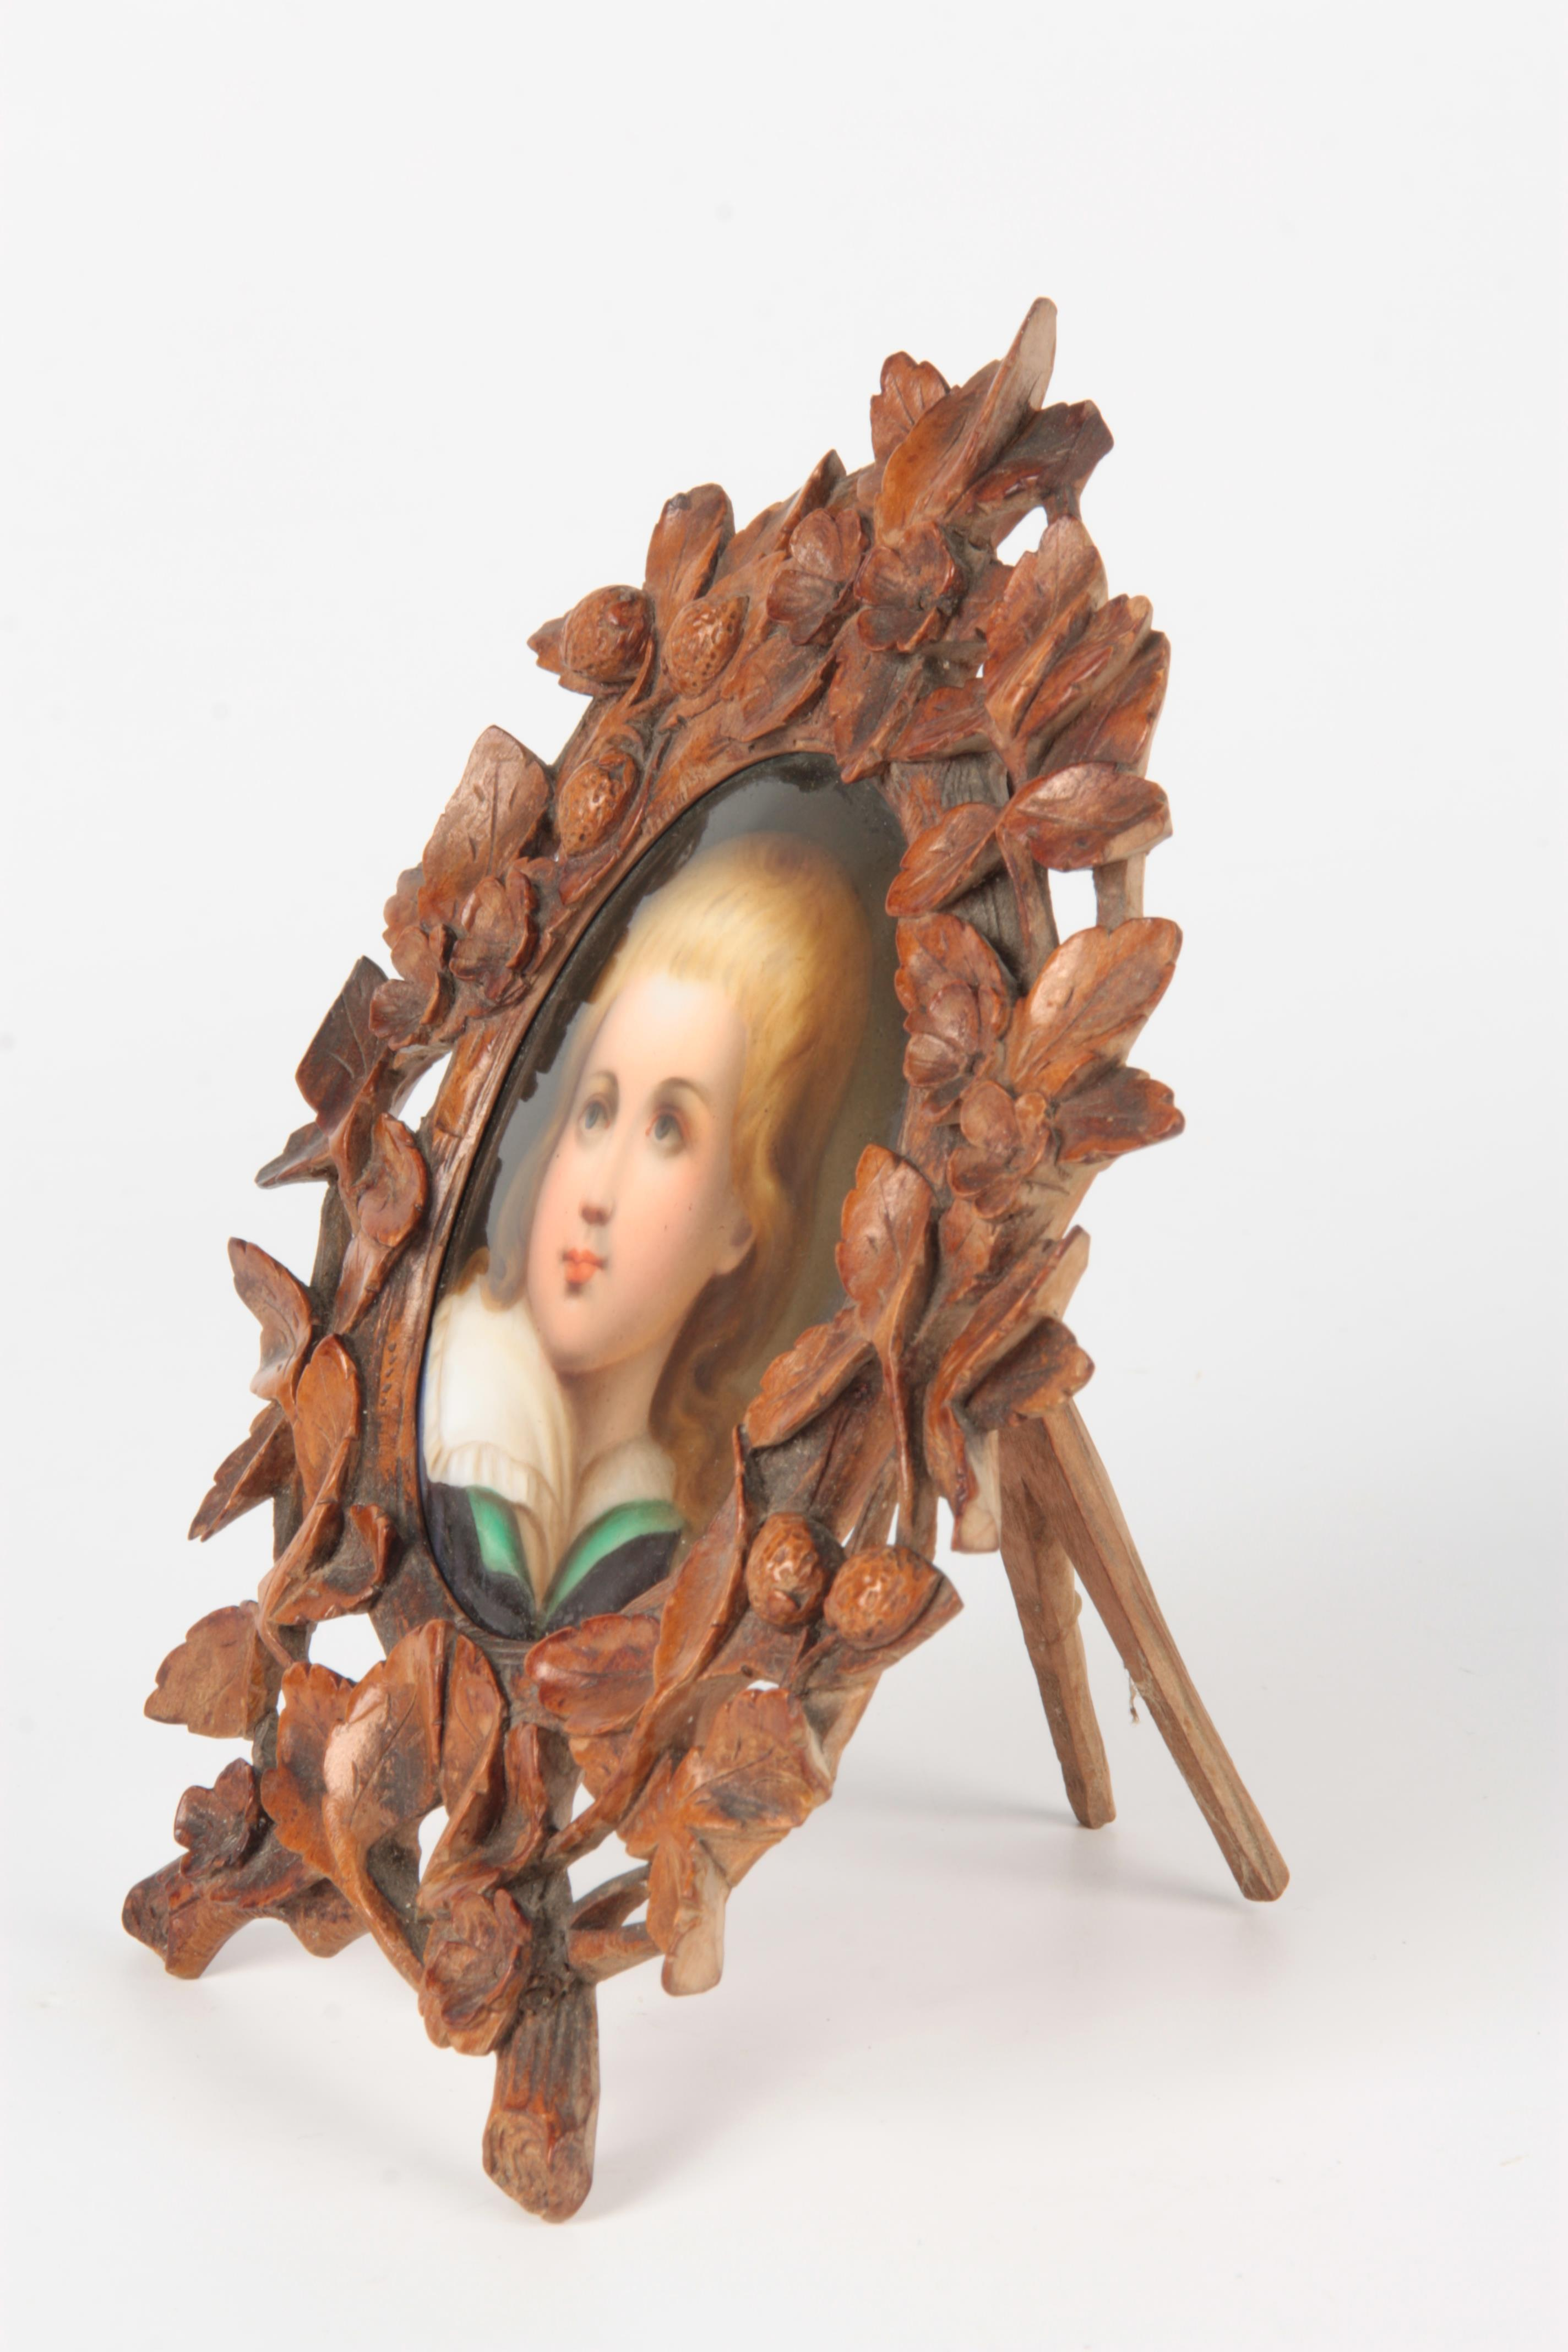 A LATE 19TH CENTURY GERMAN PORCELAIN PLAQUE IN CARVED BLACK FOREST FRAME the leaf work and floral - Image 3 of 5